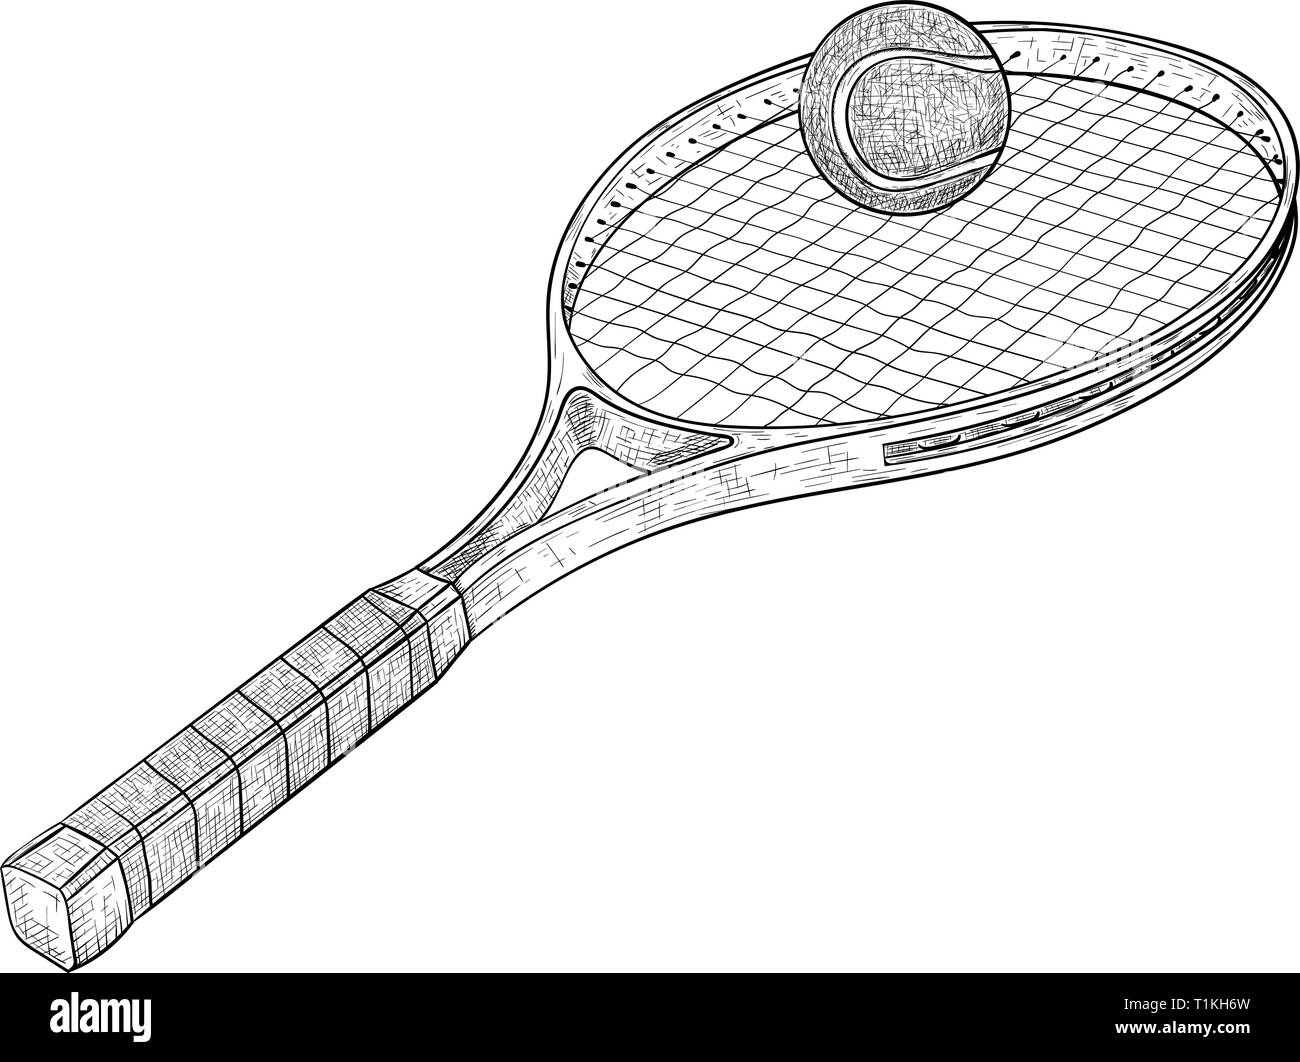 Tennis Racket With A Ball Hand Drawn Sketch Stock Vector Image Art Alamy